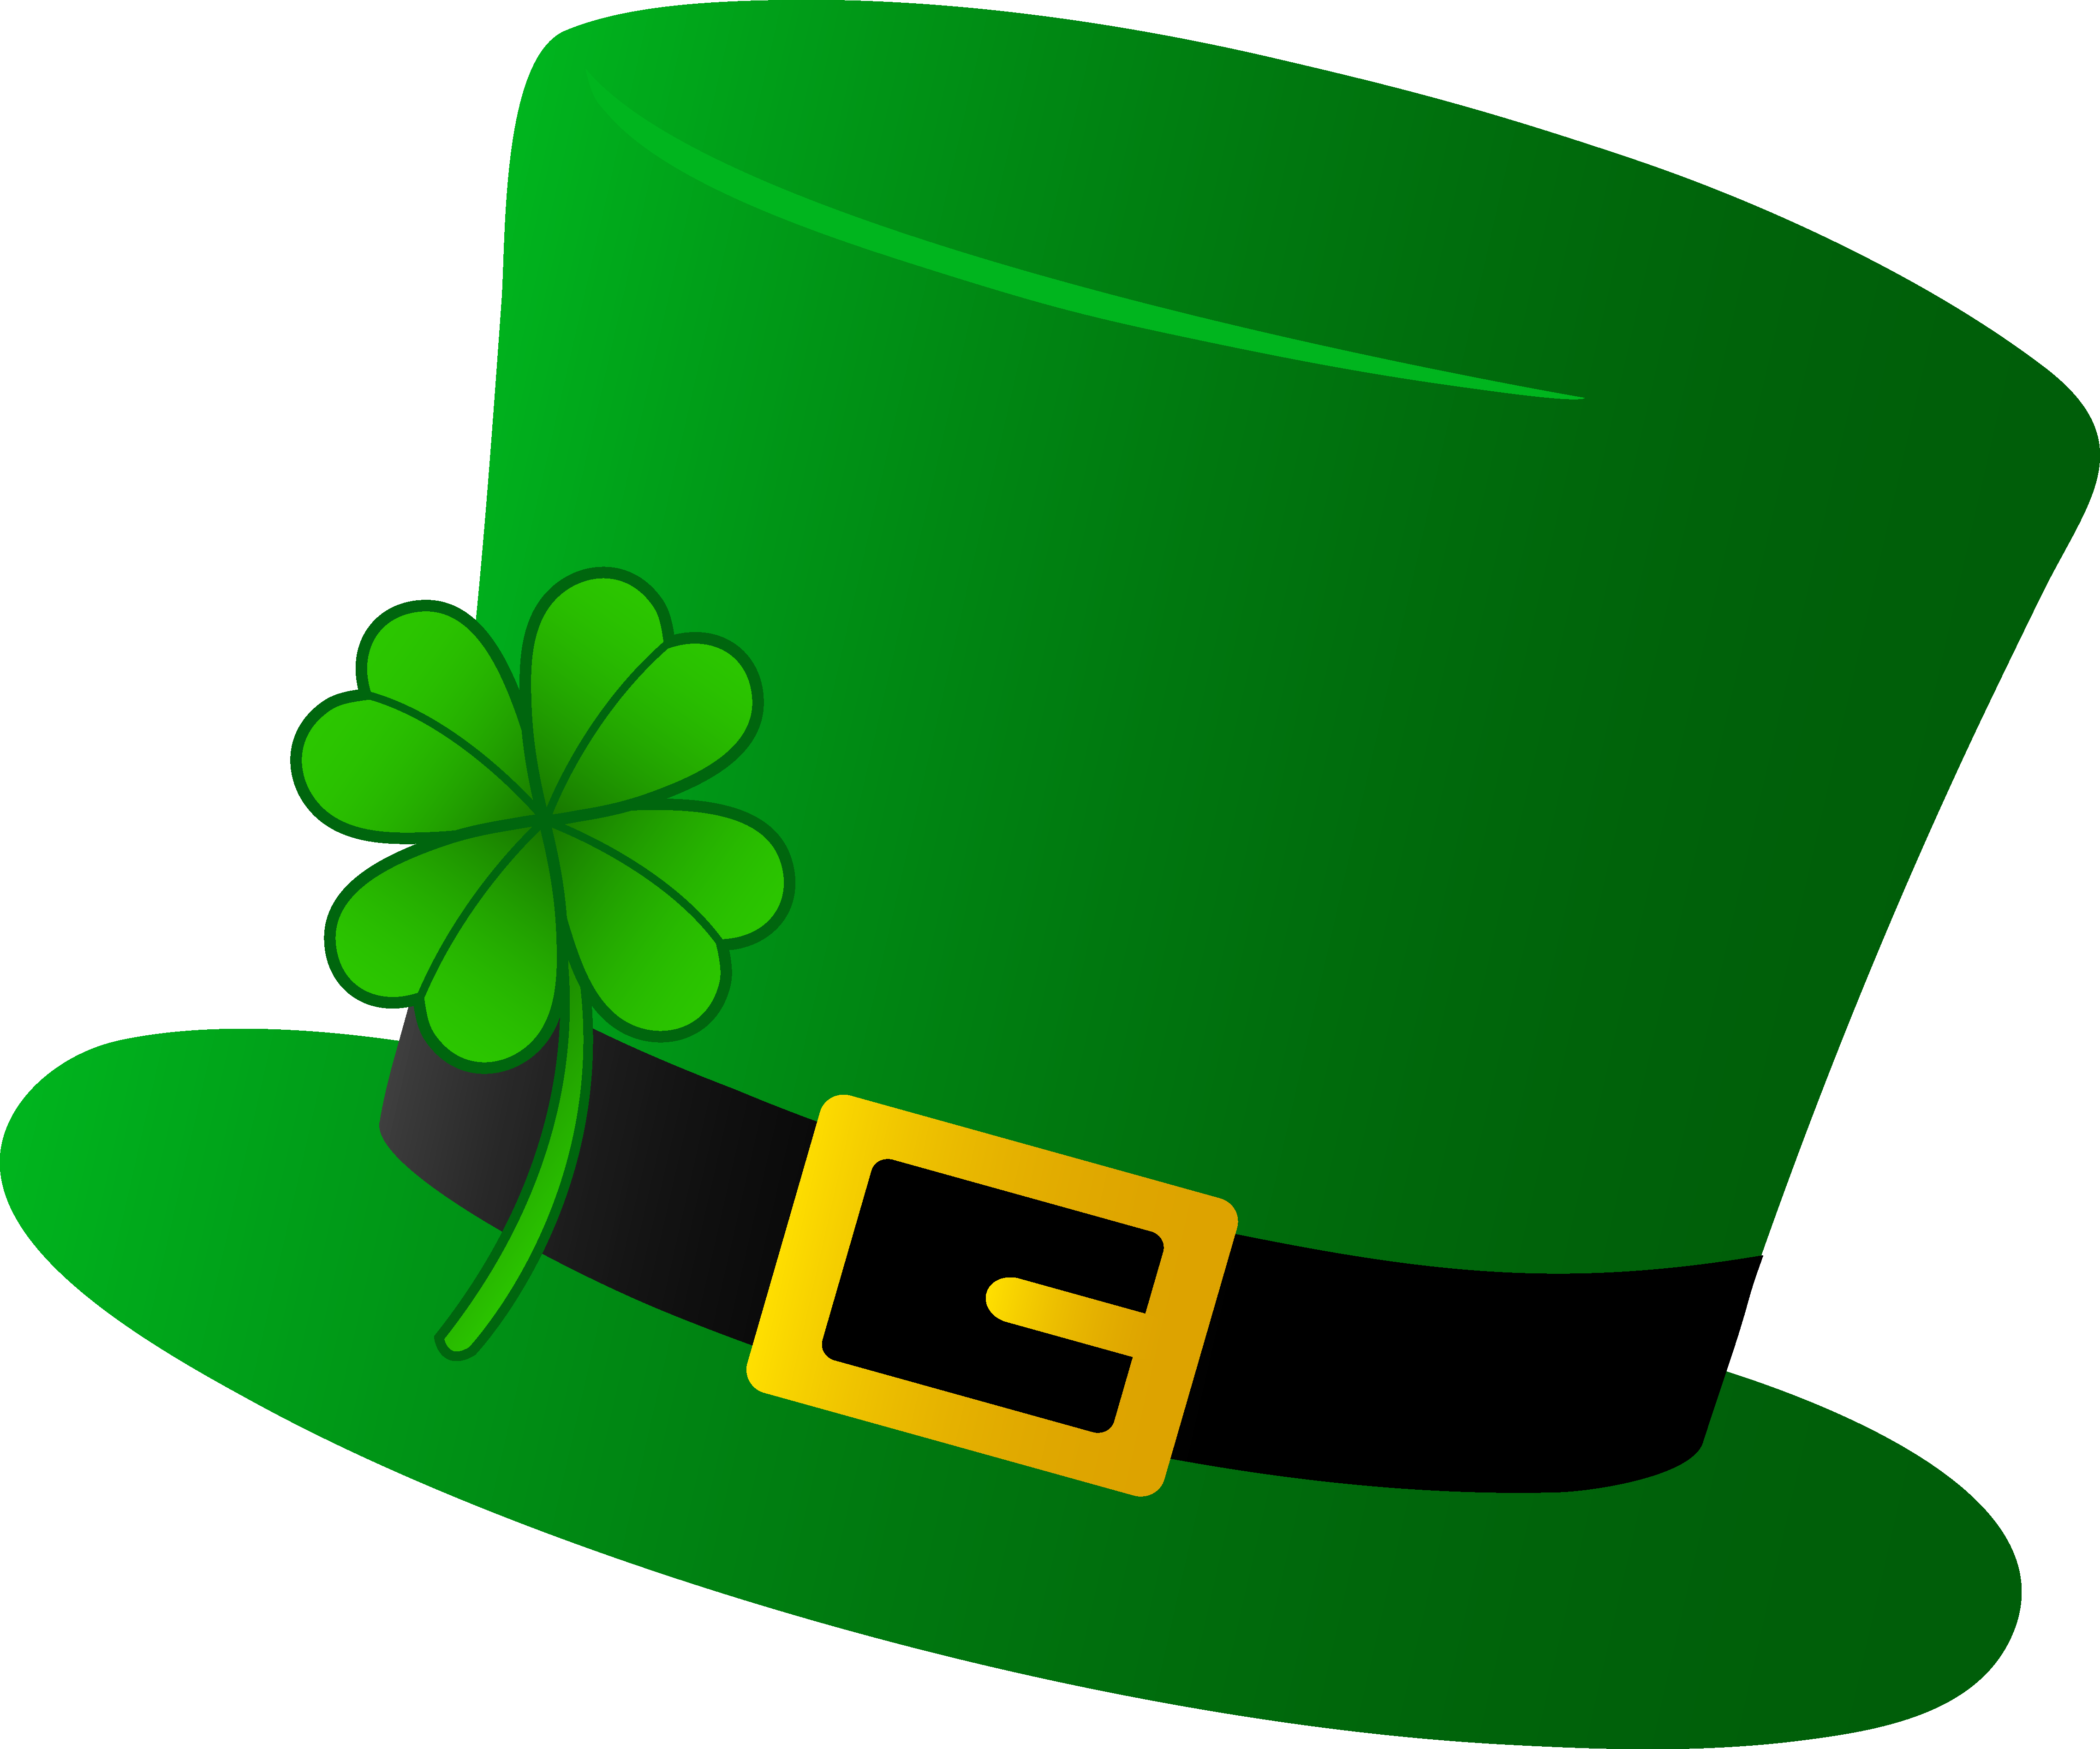 Shamrock clipart #1, Download drawings